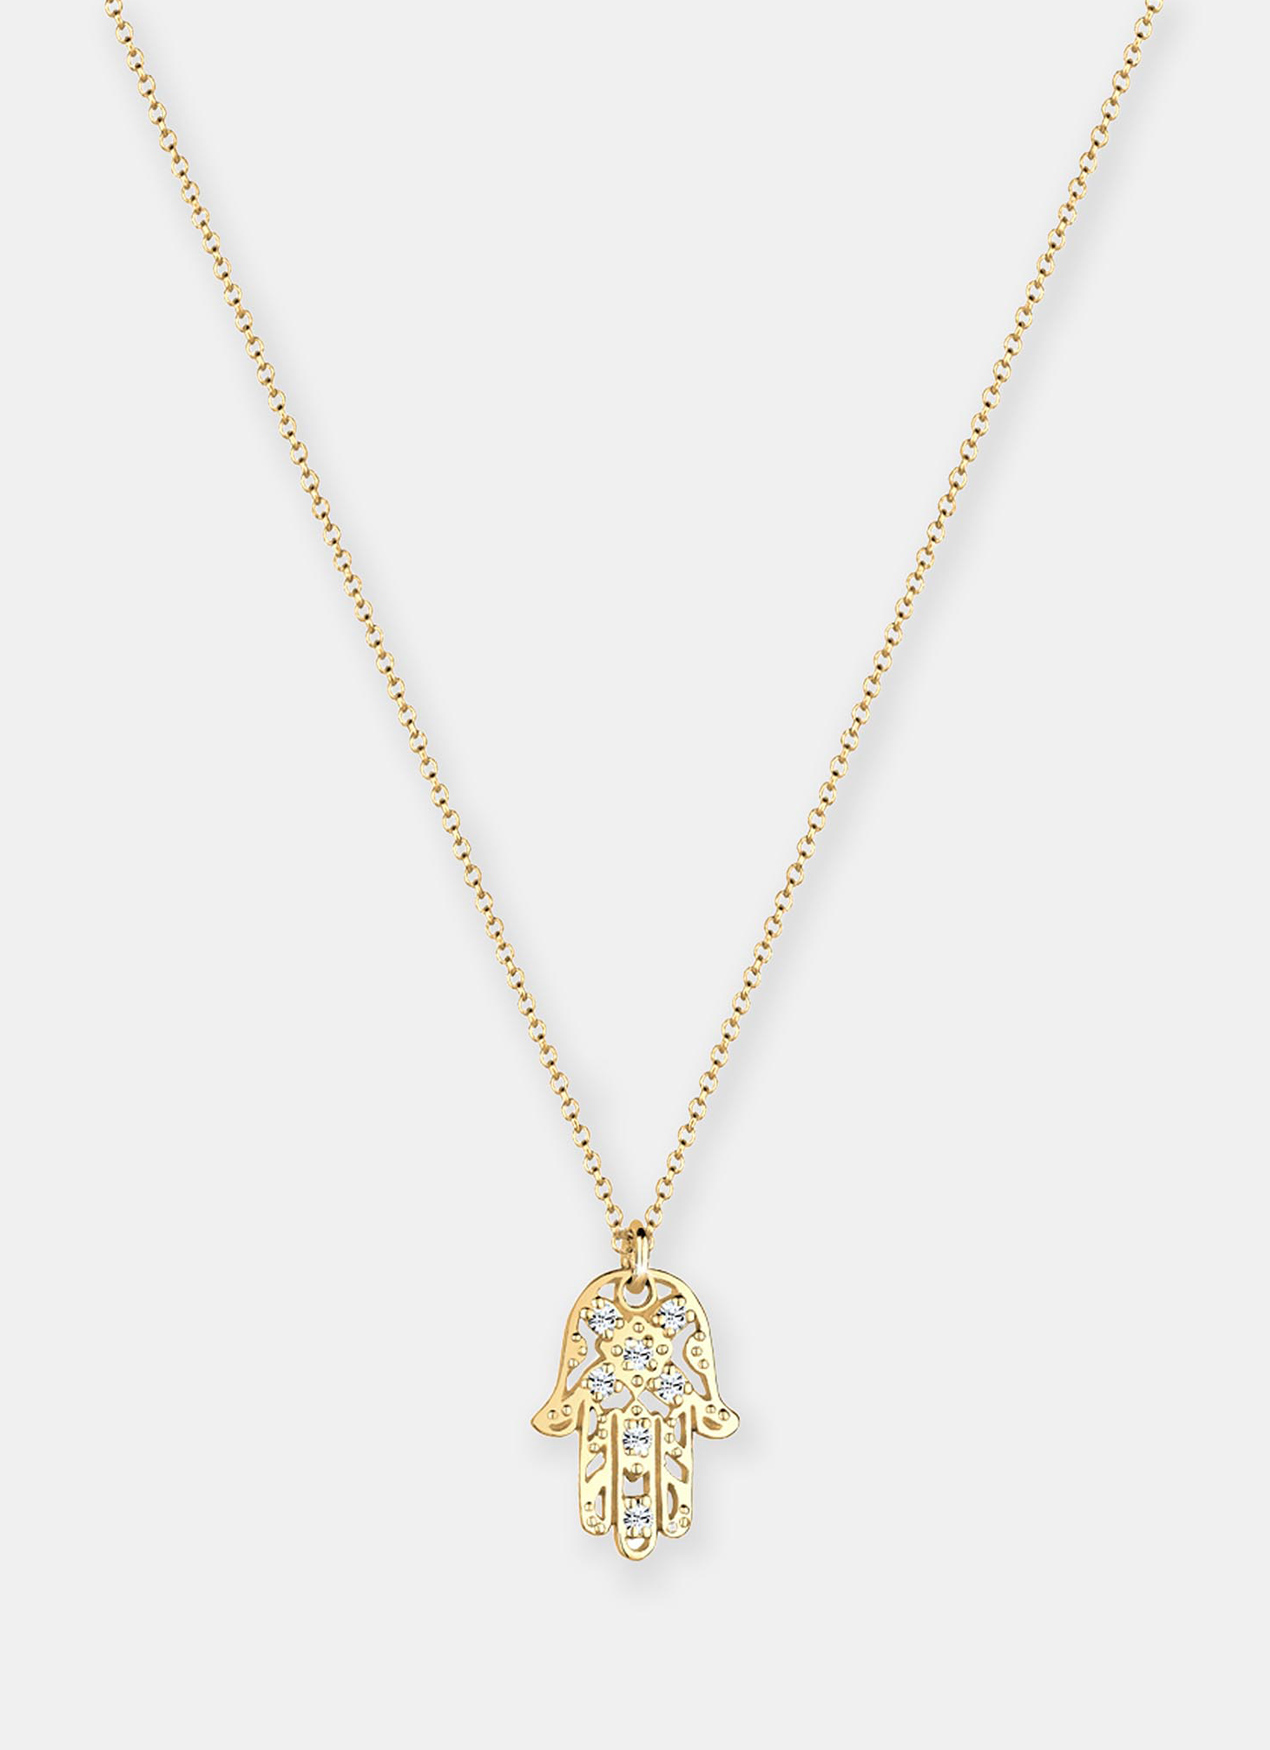 e6f2132ea7a32 Hamsa Hand Swarovski Crystals Necklace - Gold, Elli Germany